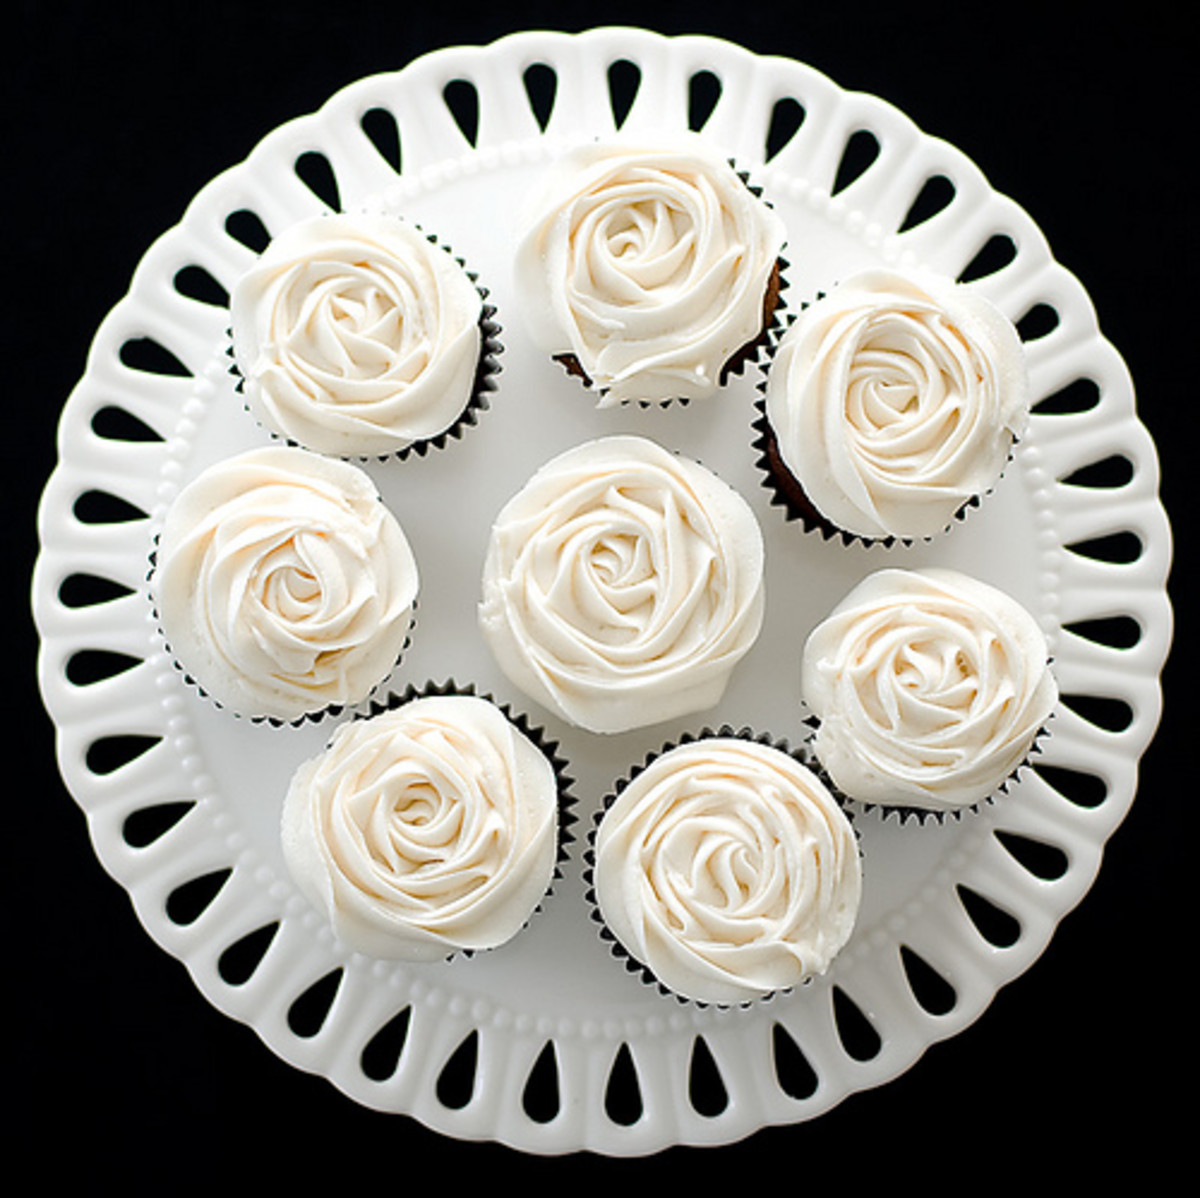 White Chocolate Buttercream Frosting Recipe